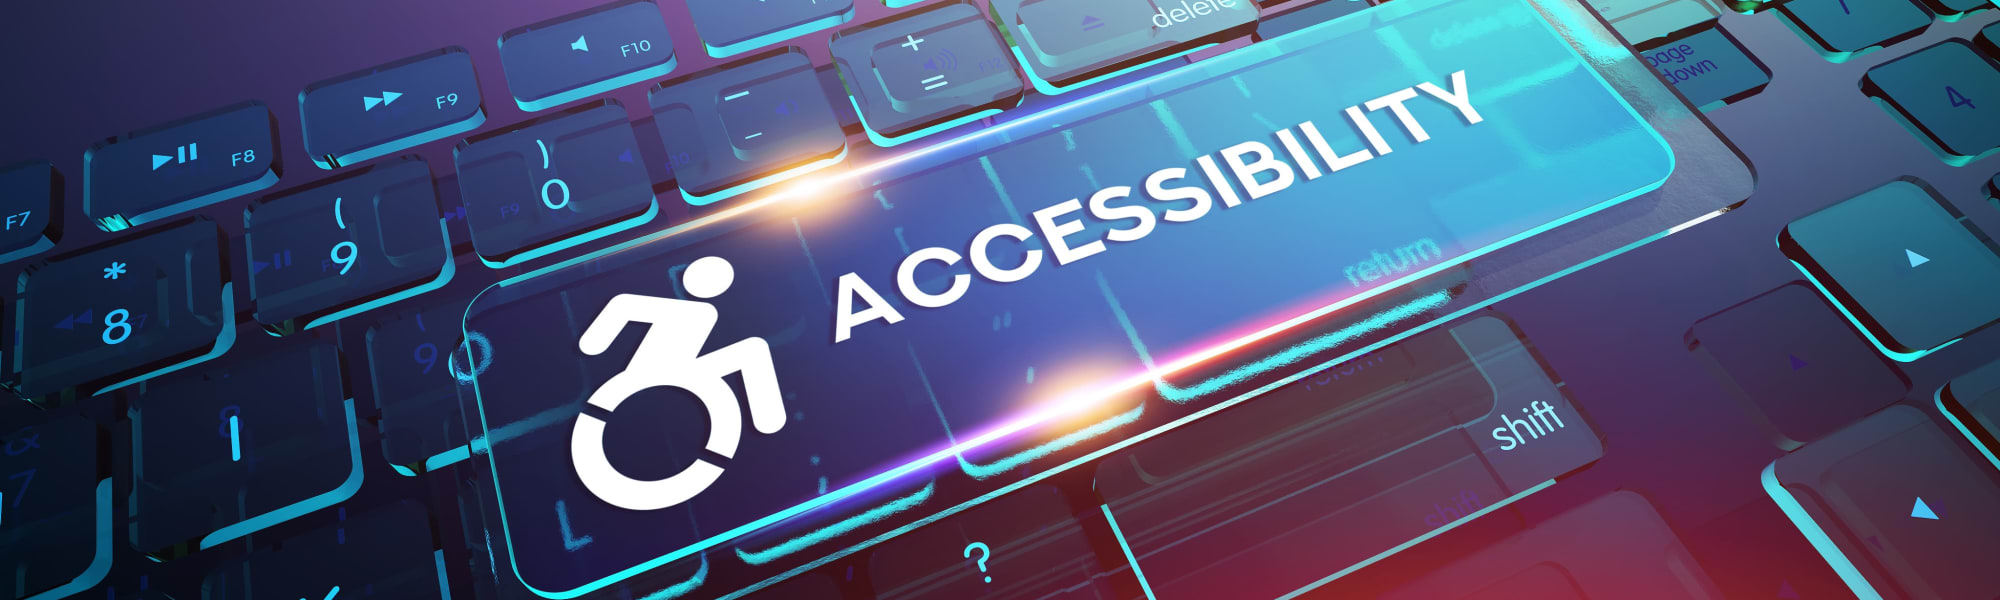 Accessibility policy for Olympus Waterside Estates in Richmond, Texas